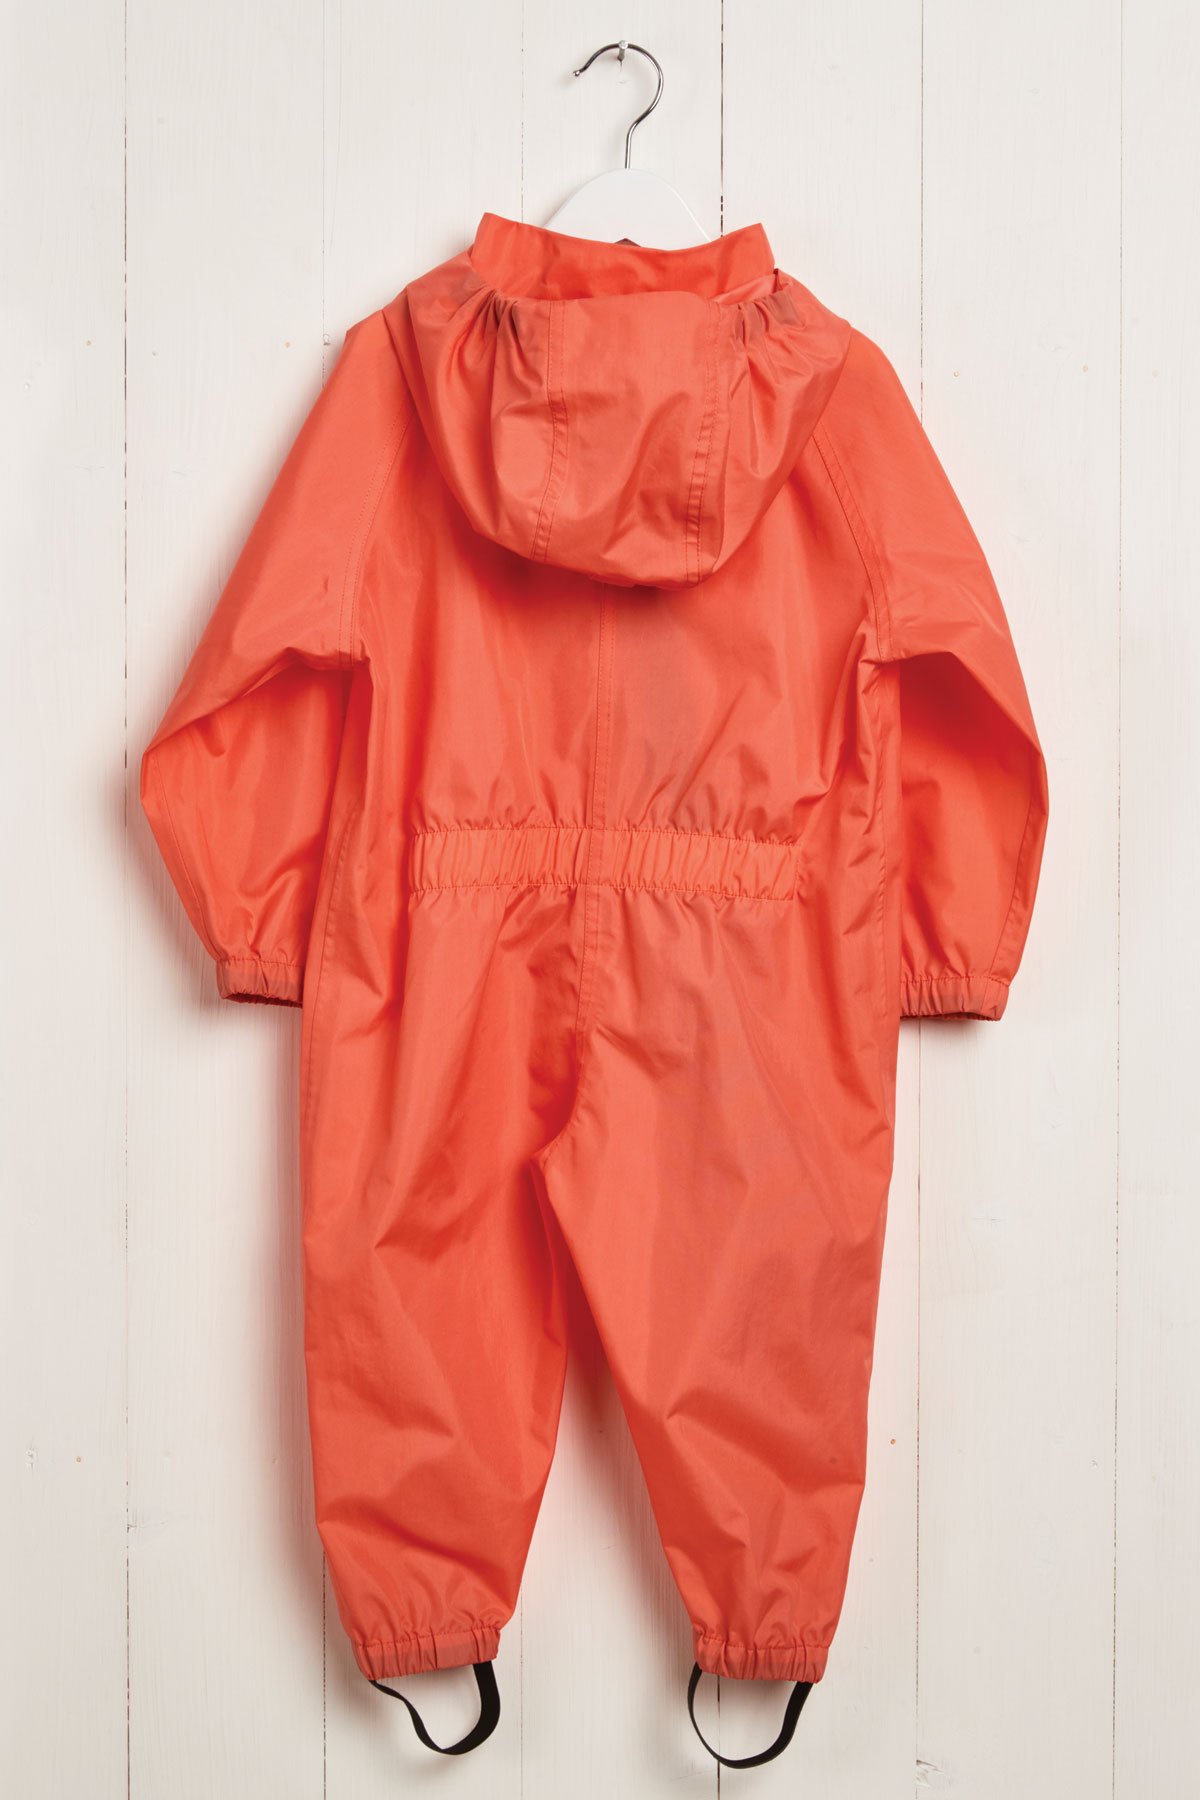 rear product view of kids coral stomper suit